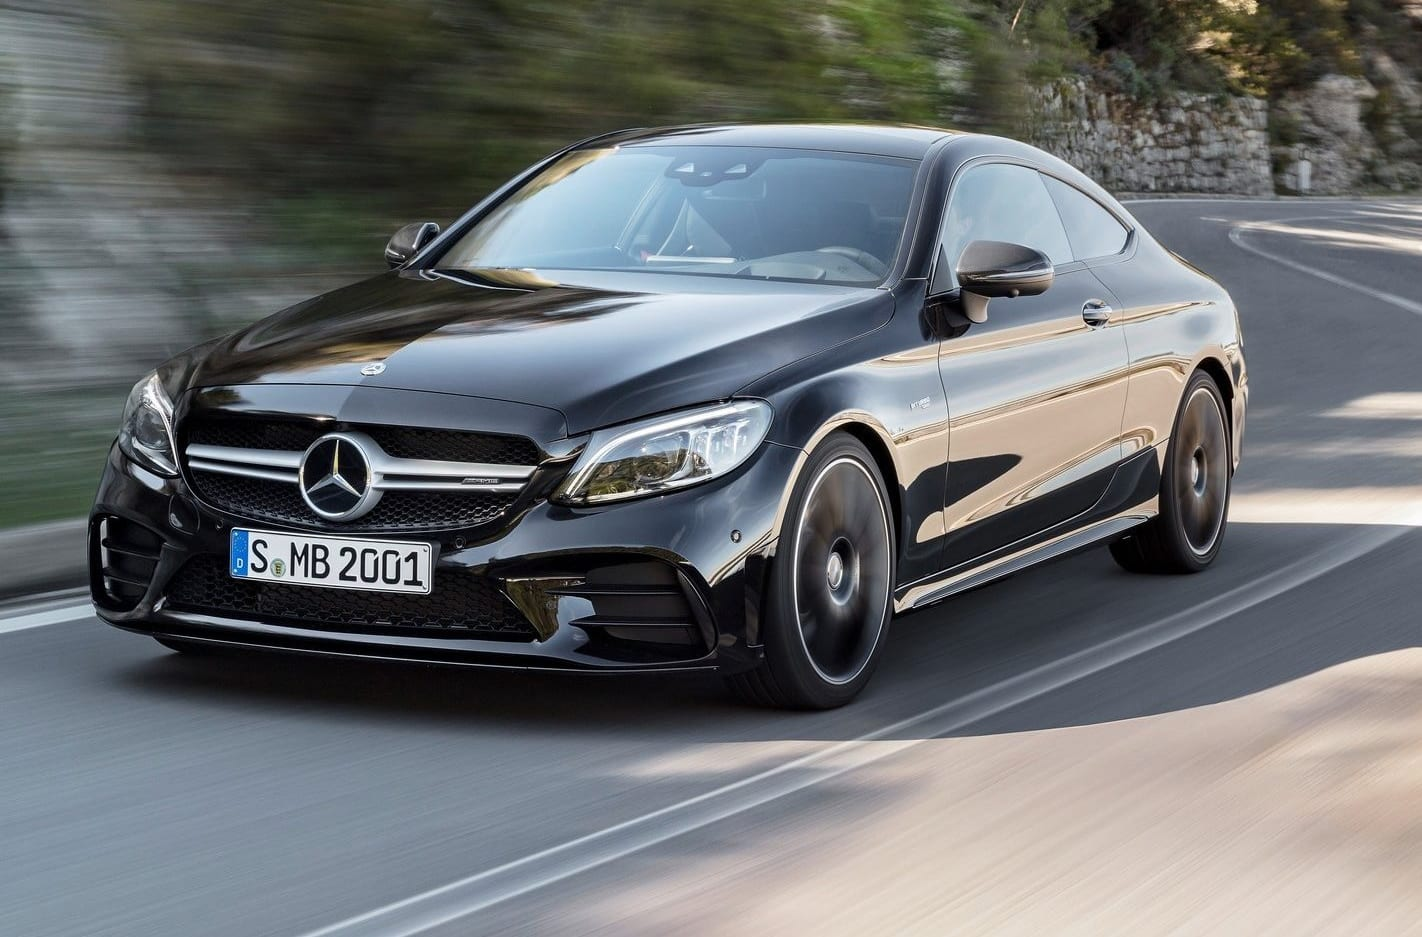 Mercedes-Benz C-Class Coupe and Cabrio updated